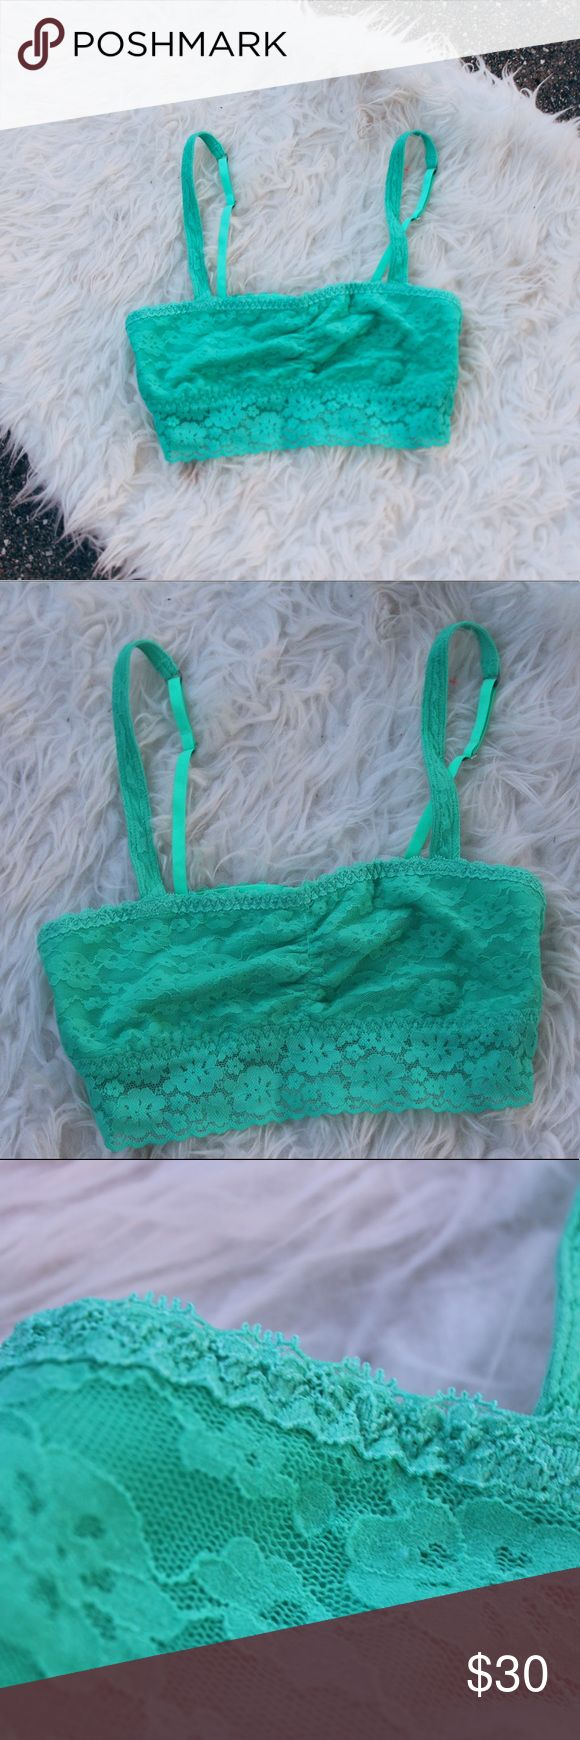 Hollister Gilly Hicks sea foam green bandeau This comfortable bandeau top is super stretchy with pretty, allover lace. Imported. With soft, stretchy lace and removable padding, these lightly-lined lovelies are your absolute summer essential!! If you have anymore questions feel free to ask! 💓☺️ Hollister Intimates & Sleepwear Bandeaus